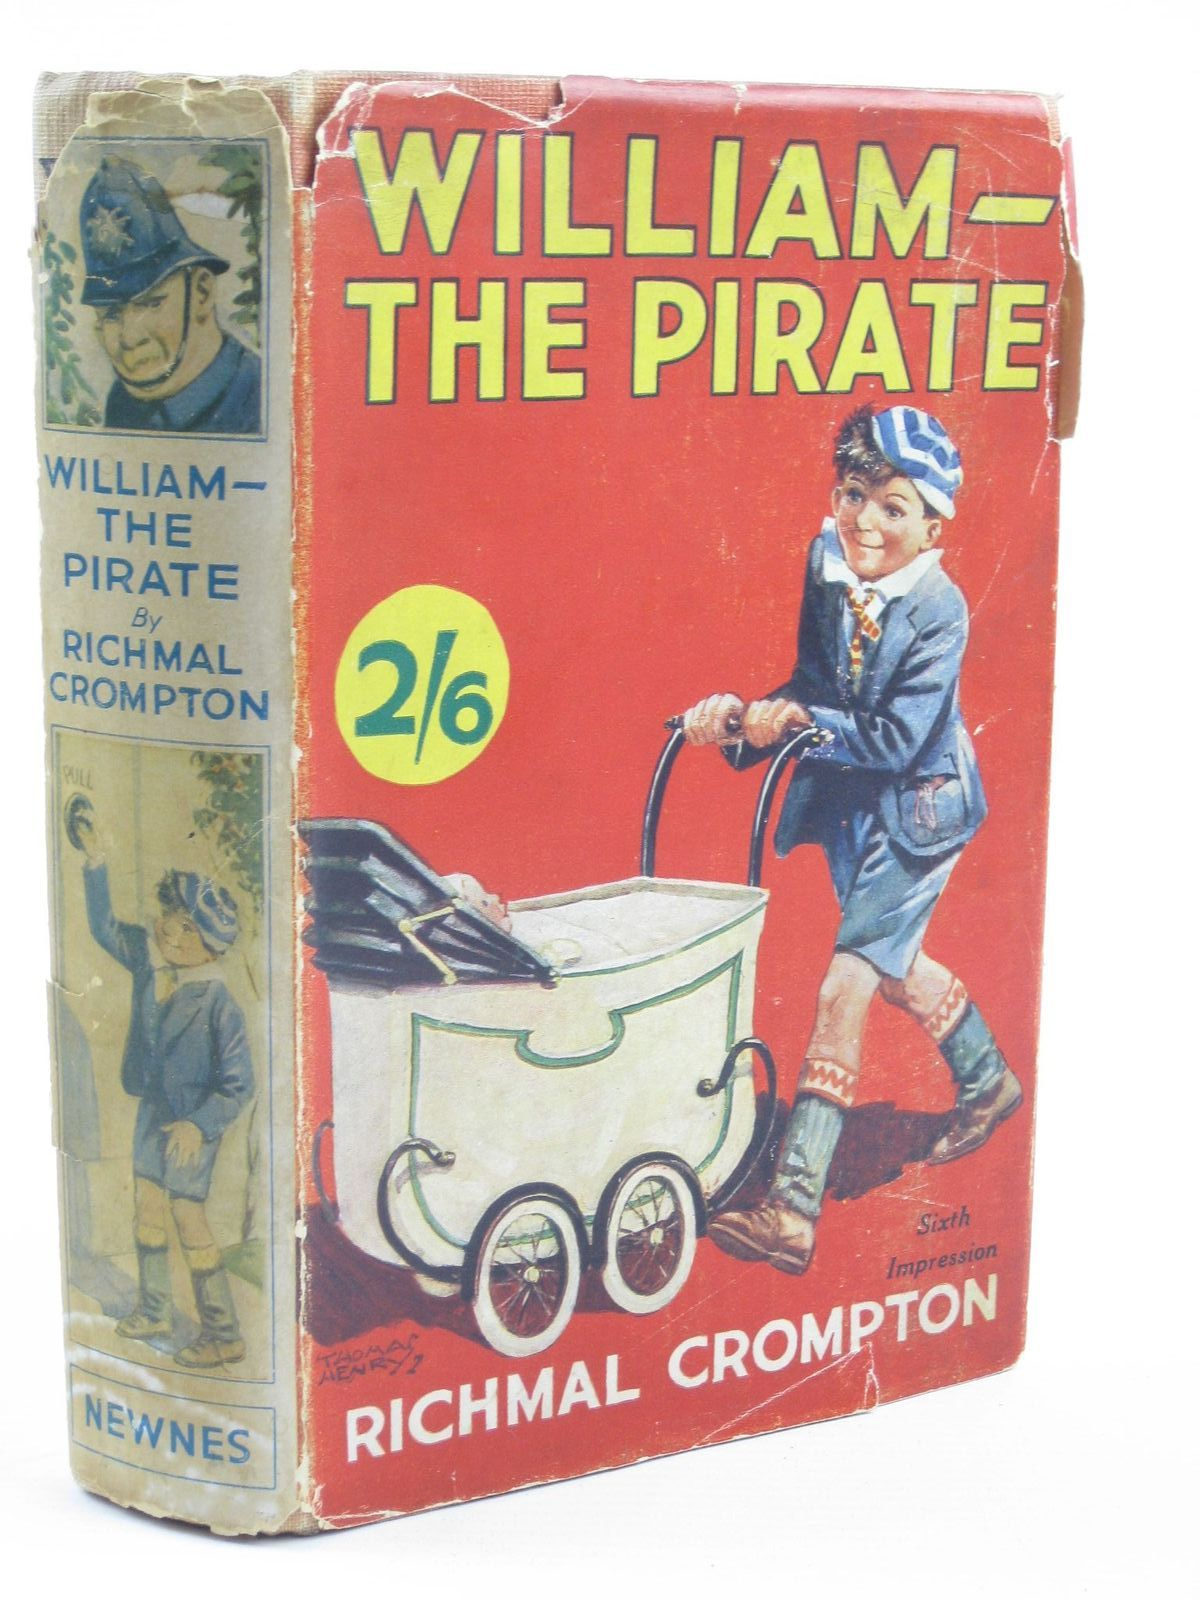 Cover of WILLIAM-THE PIRATE by Richmal Crompton